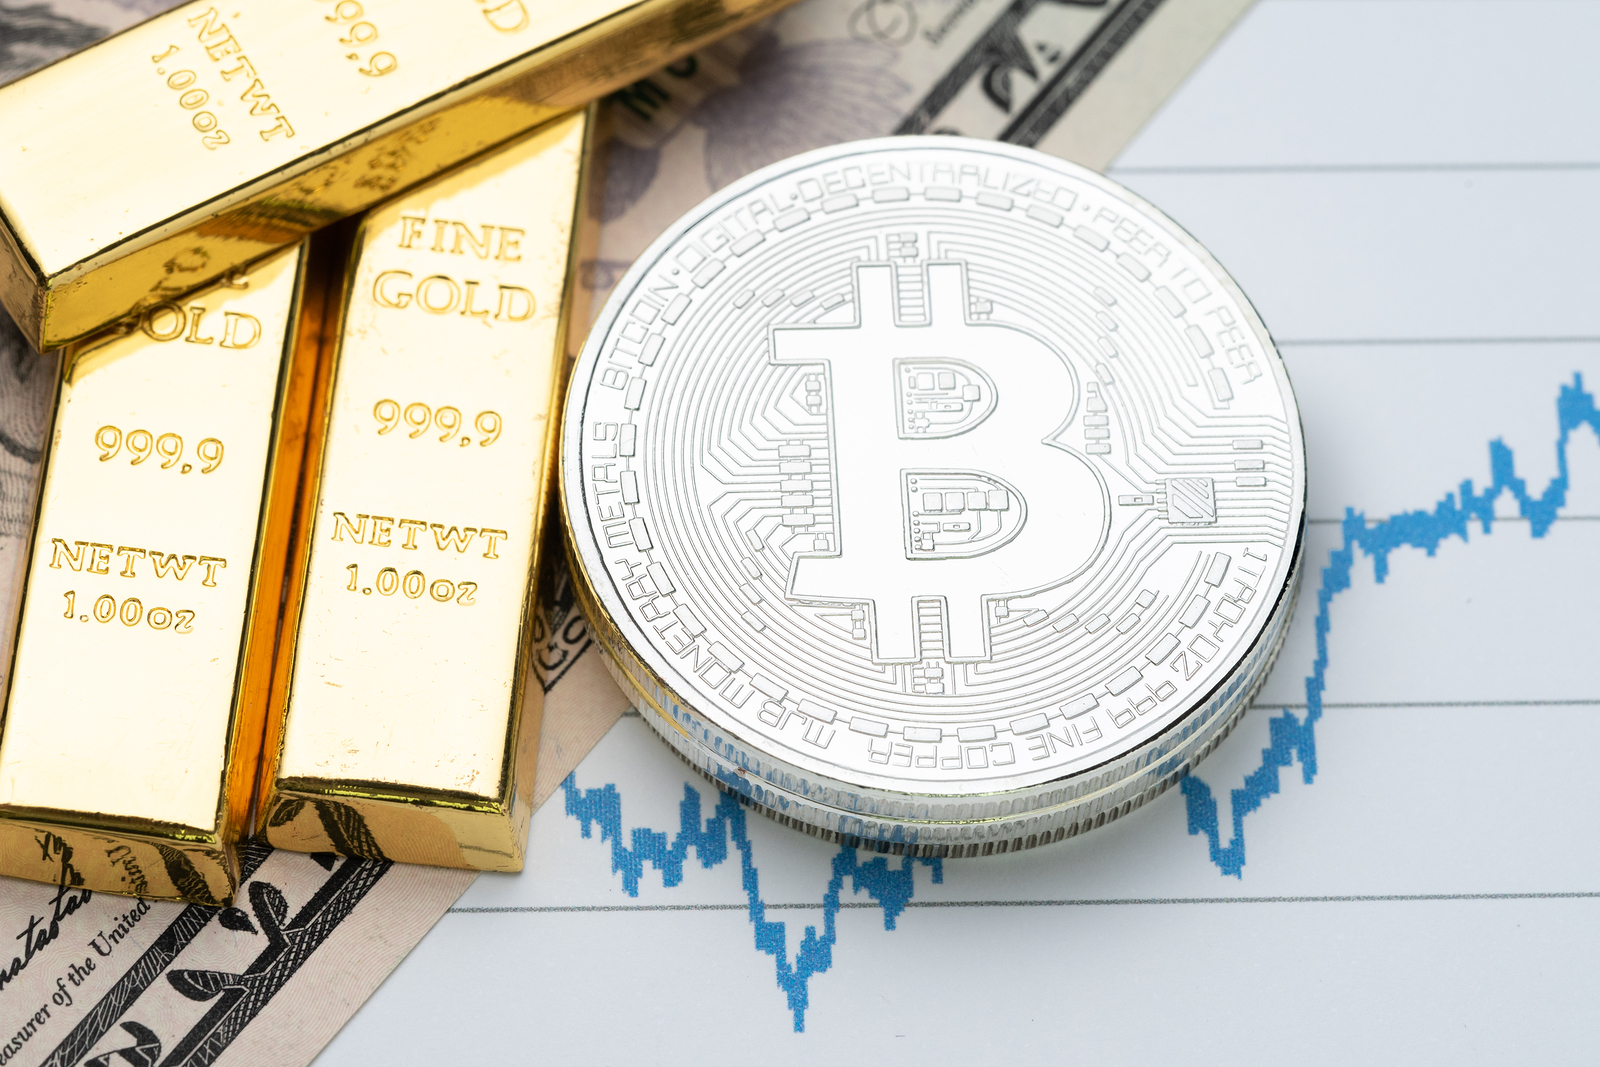 Gold and bitcoin on graph